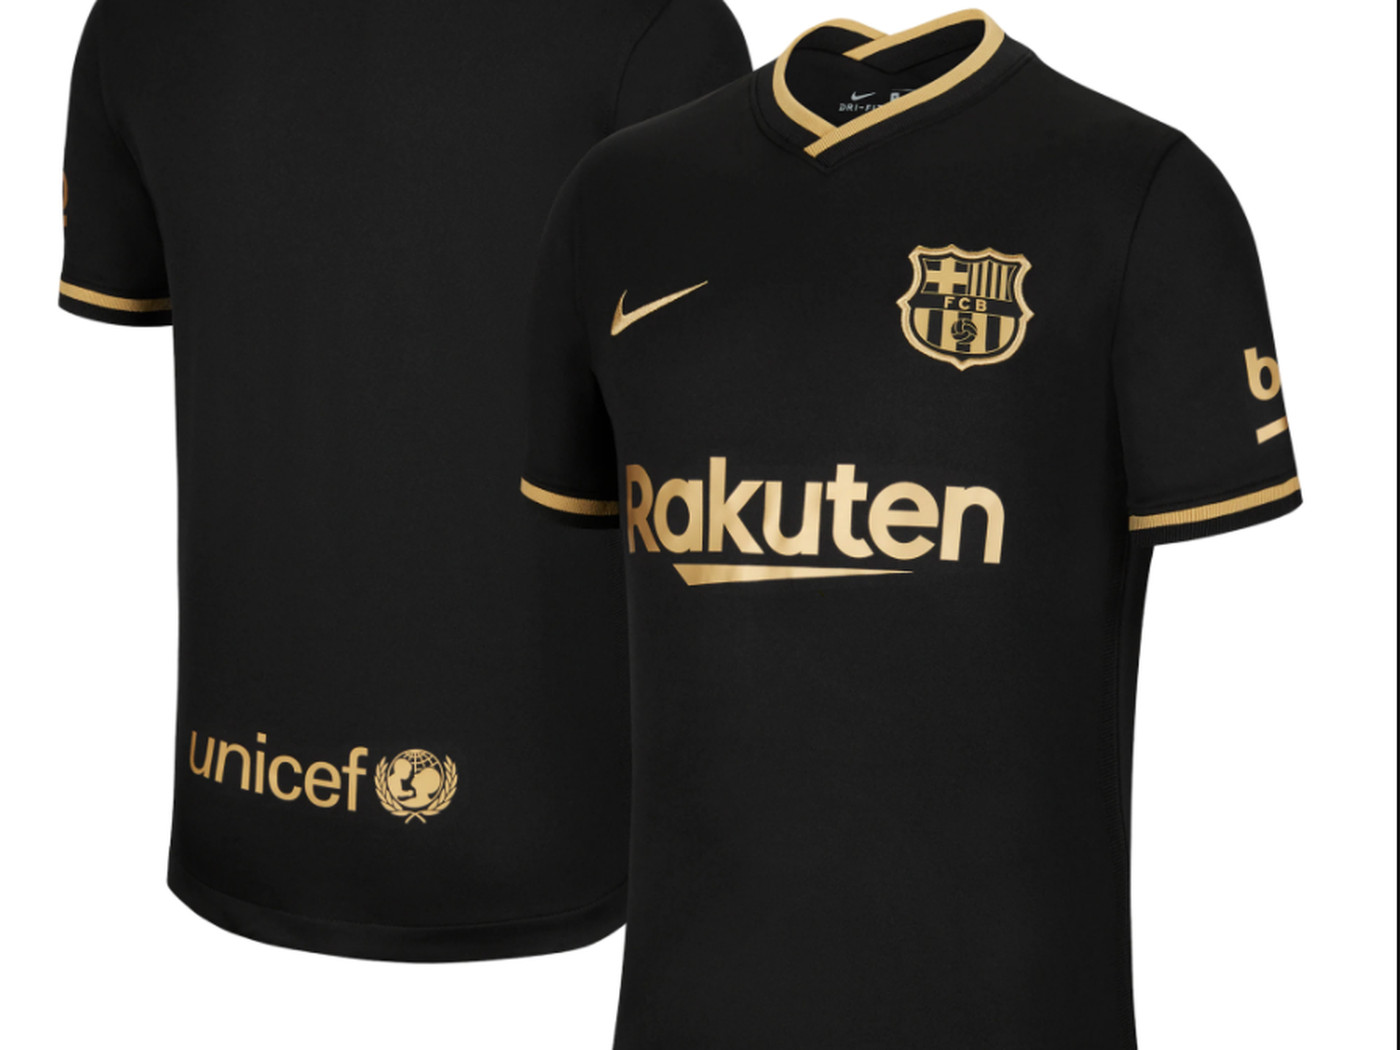 Here S Where You Can Order The New Barcelona Nike 2020 21 Away Kits Barca Blaugranes